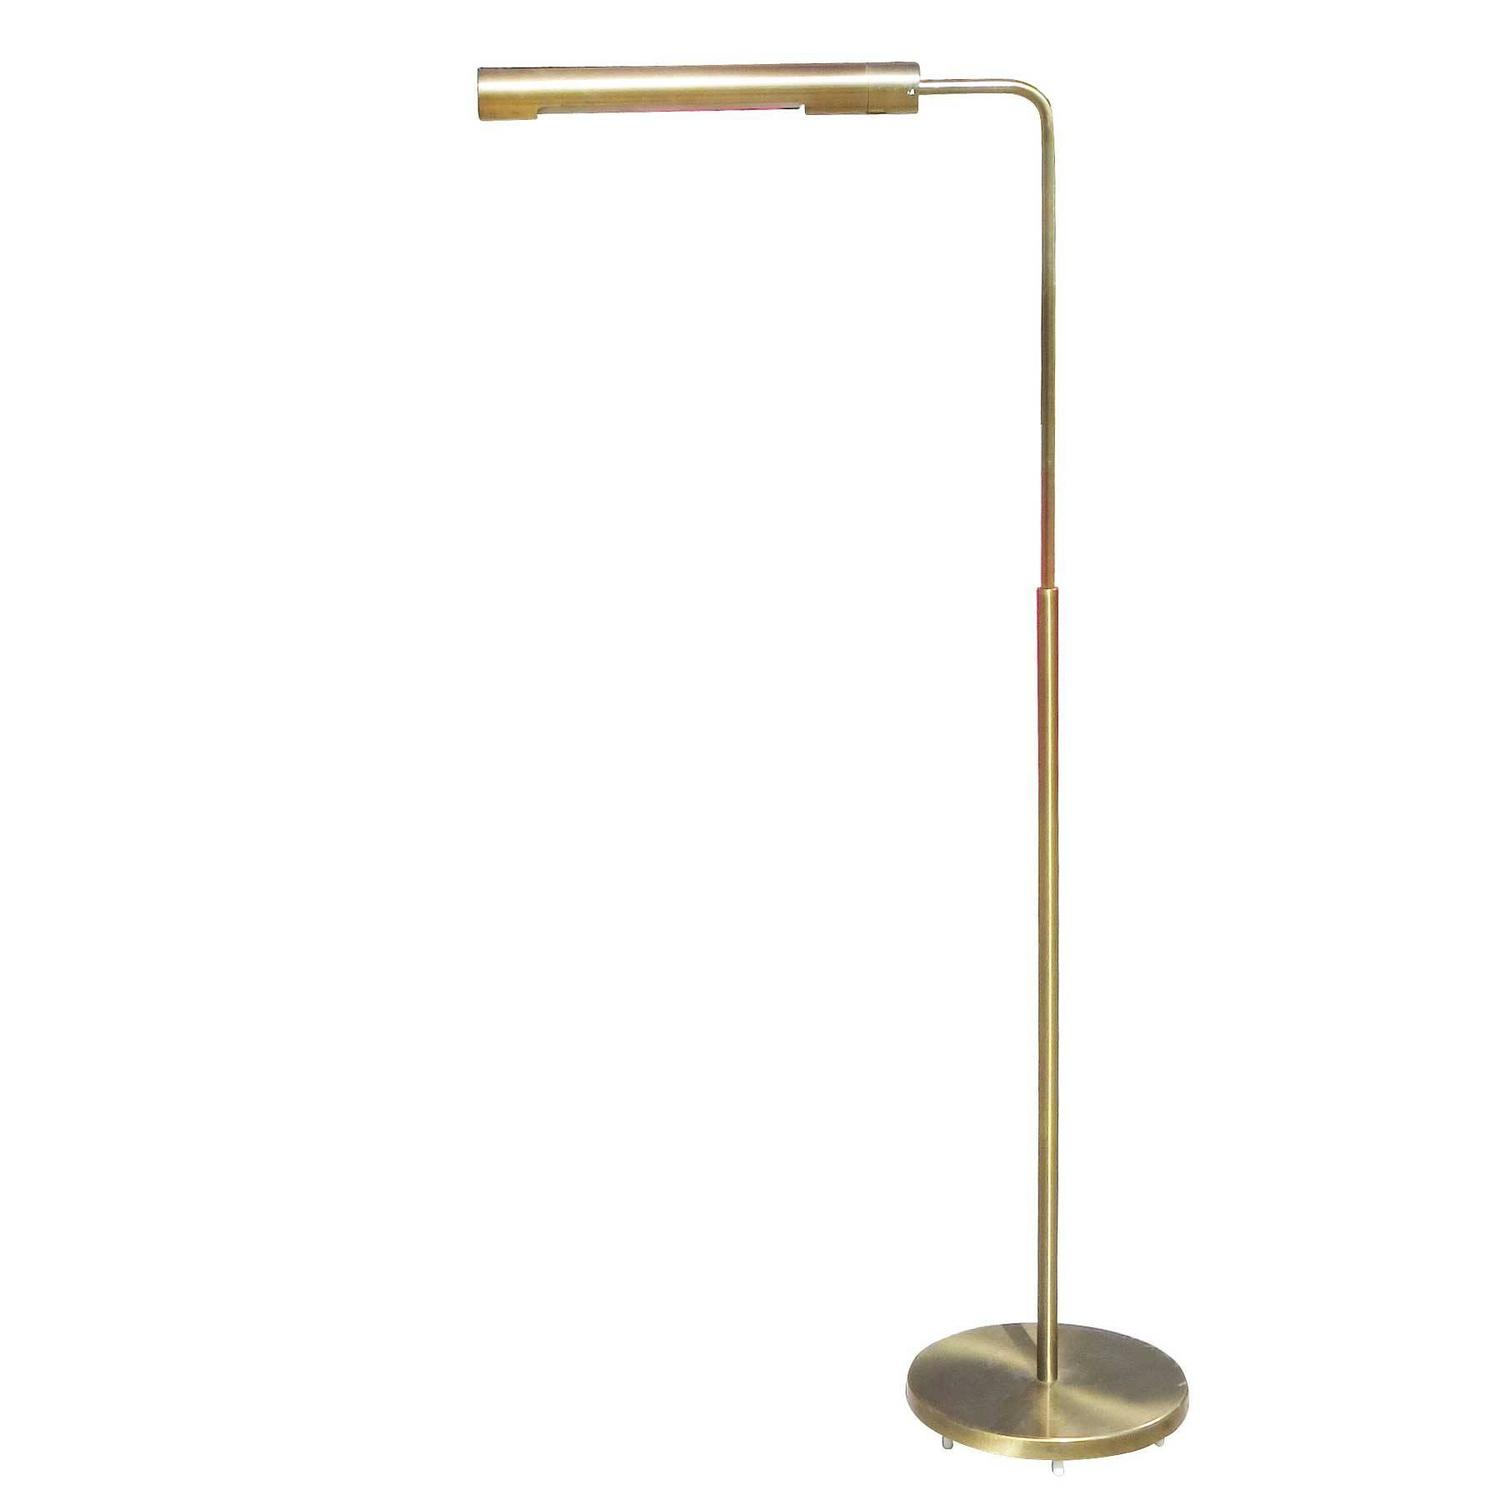 Long Cylinder Form Brass Reading Floor Lamp By Casella Modernism